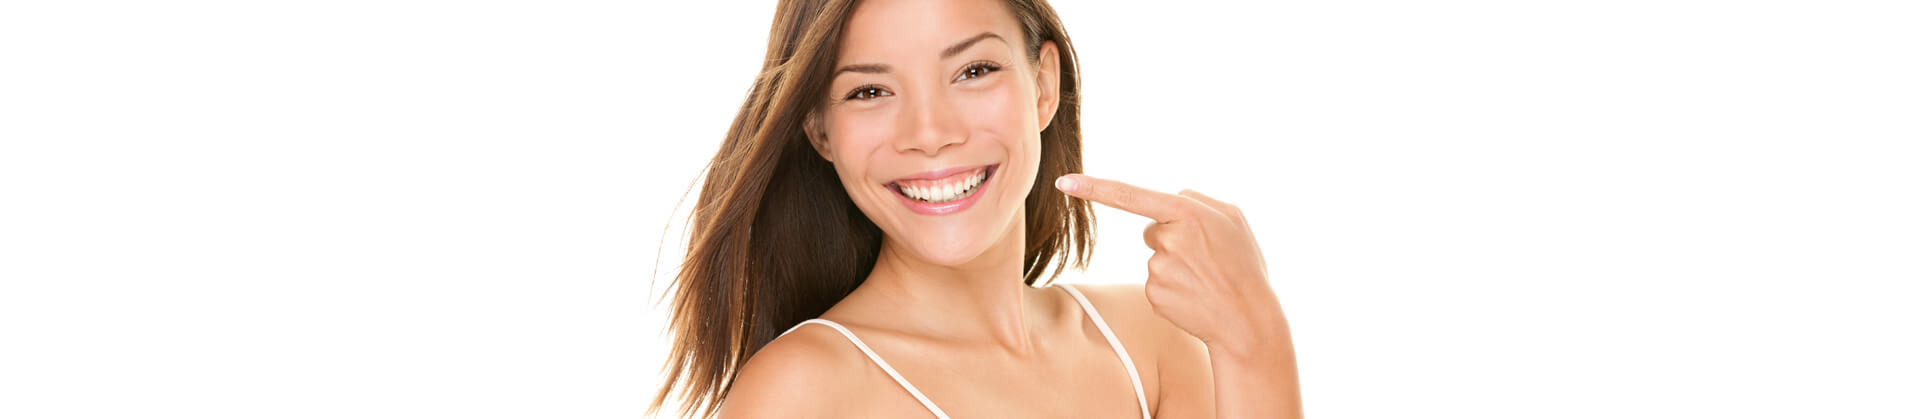 Happy woman smiling and pointing finger to her bright white teeth